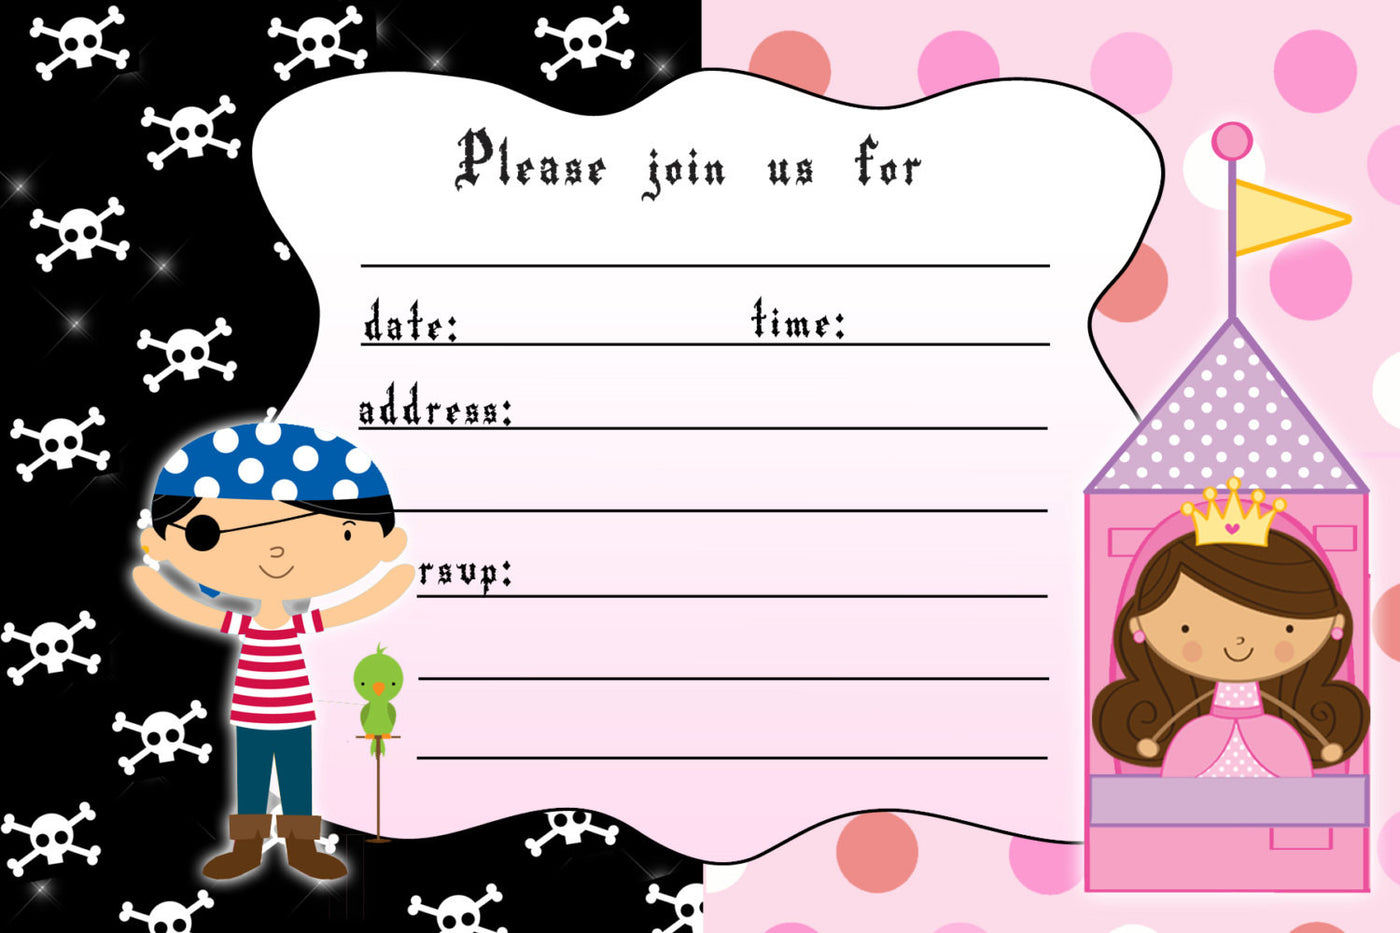 Pirate Princess Invitation Fill In The Blanks Kids Birthday Printable Pink Cat